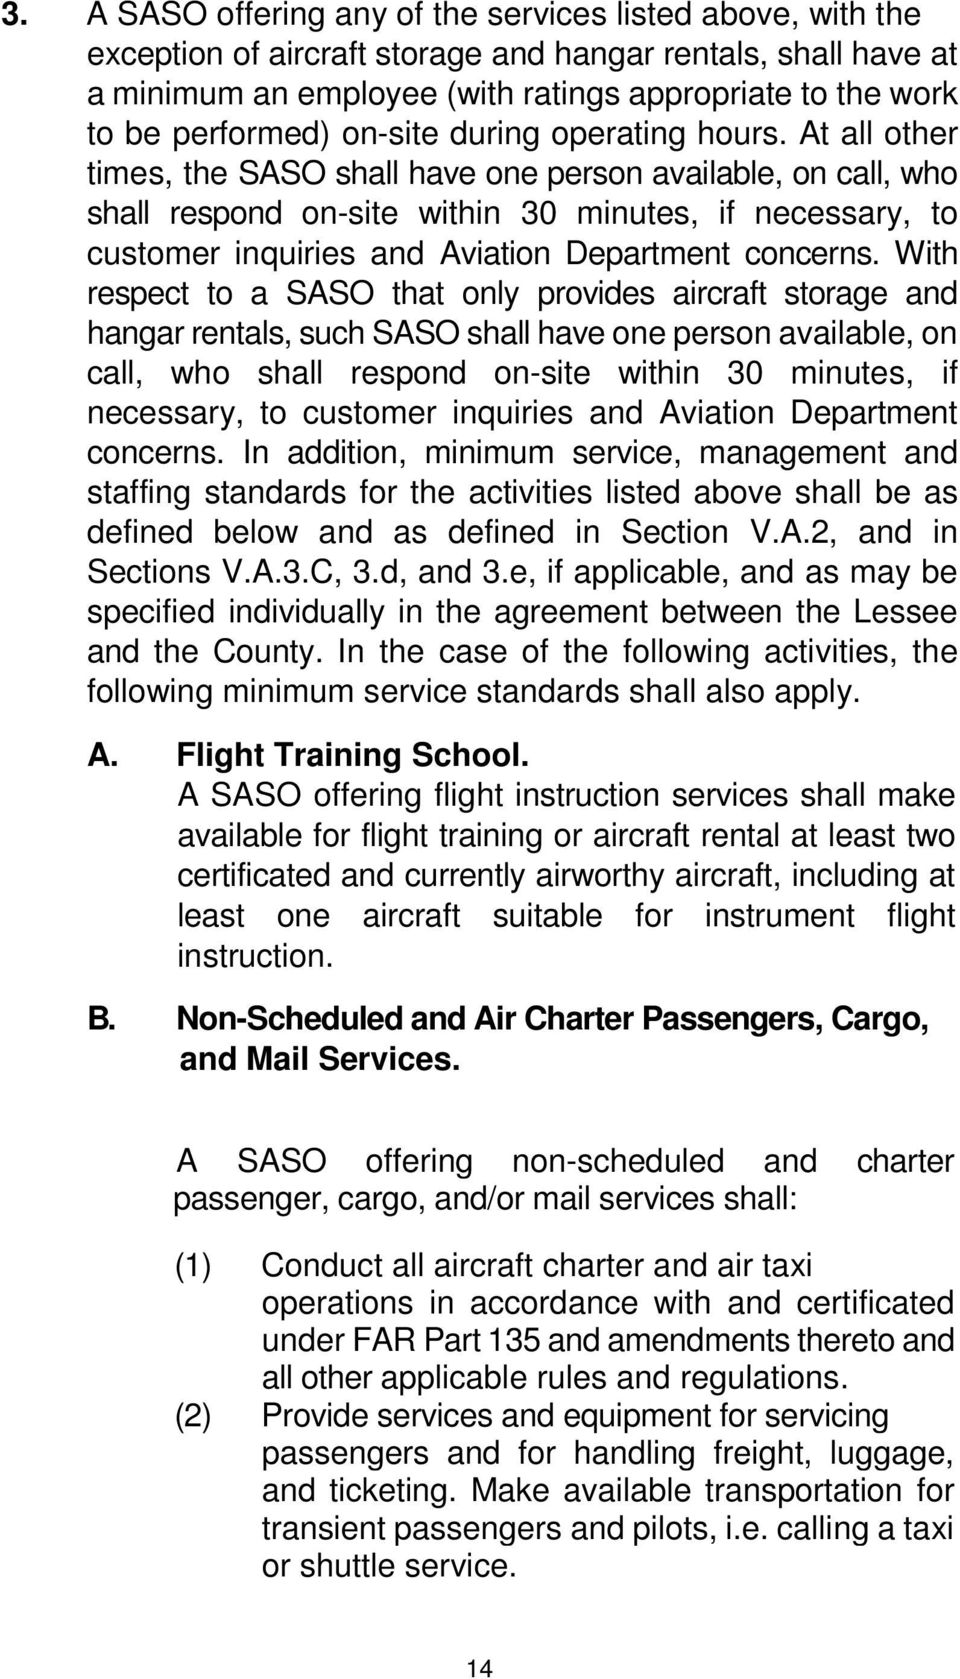 At all other times, the SASO shall have one person available, on call, who shall respond on-site within 30 minutes, if necessary, to customer inquiries and Aviation Department concerns.